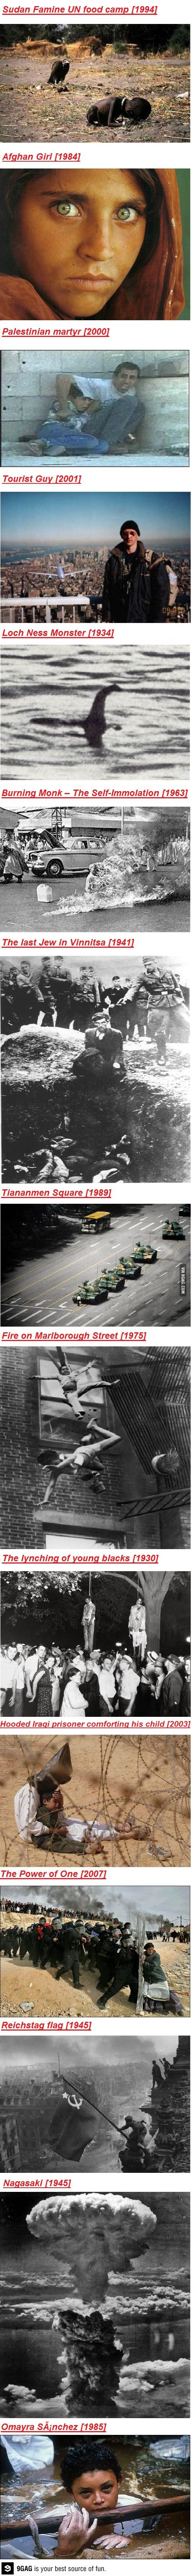 Some famous photos in history